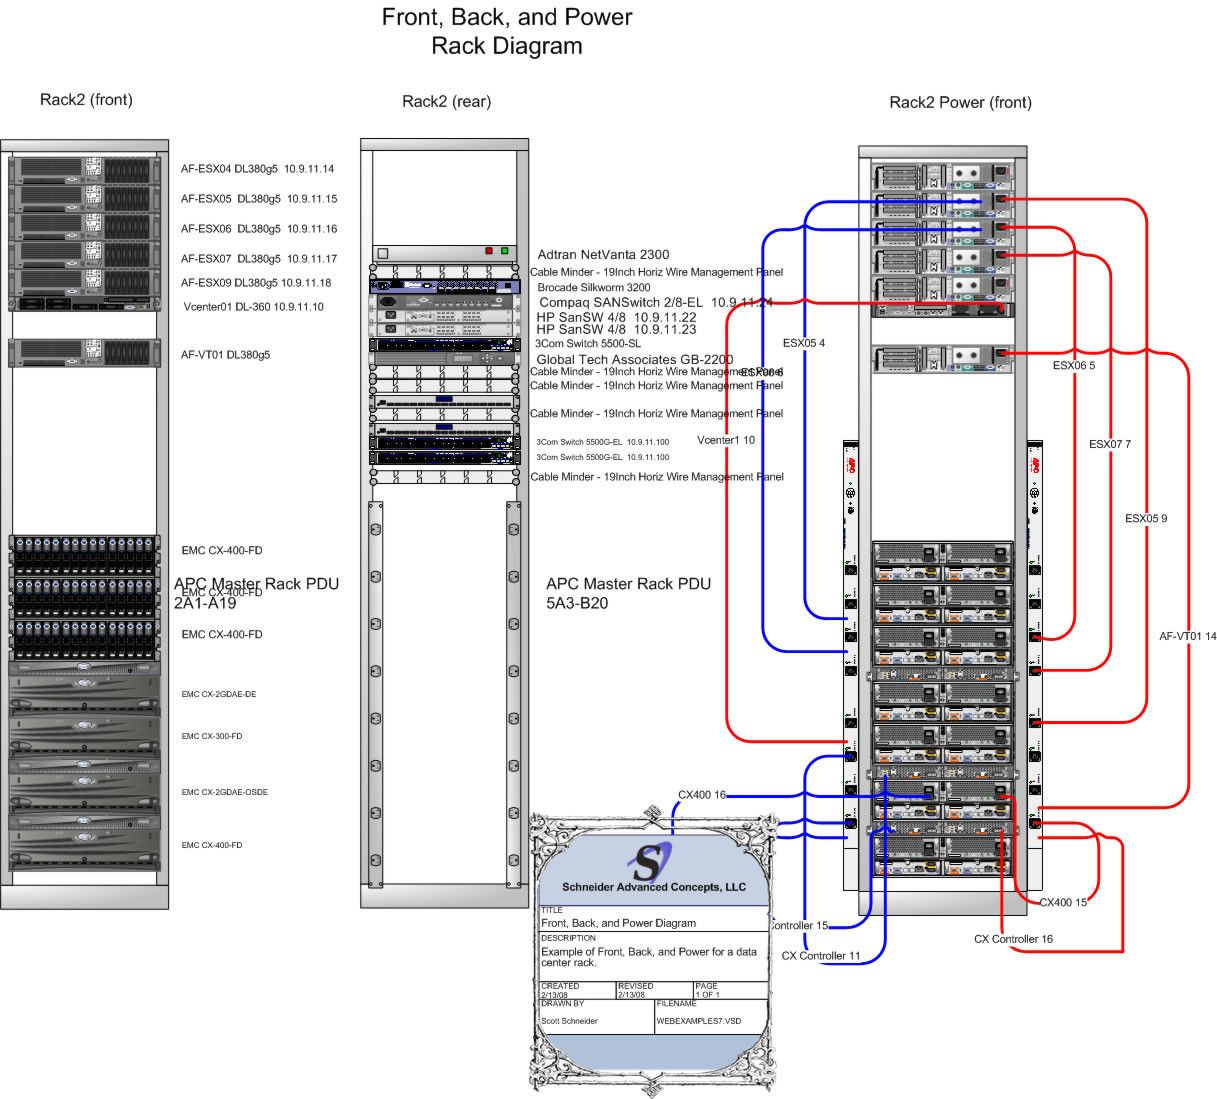 22 Good Rack Diagram - bookingritzcarlton.info | Server rack, Rack, DiagramPinterest